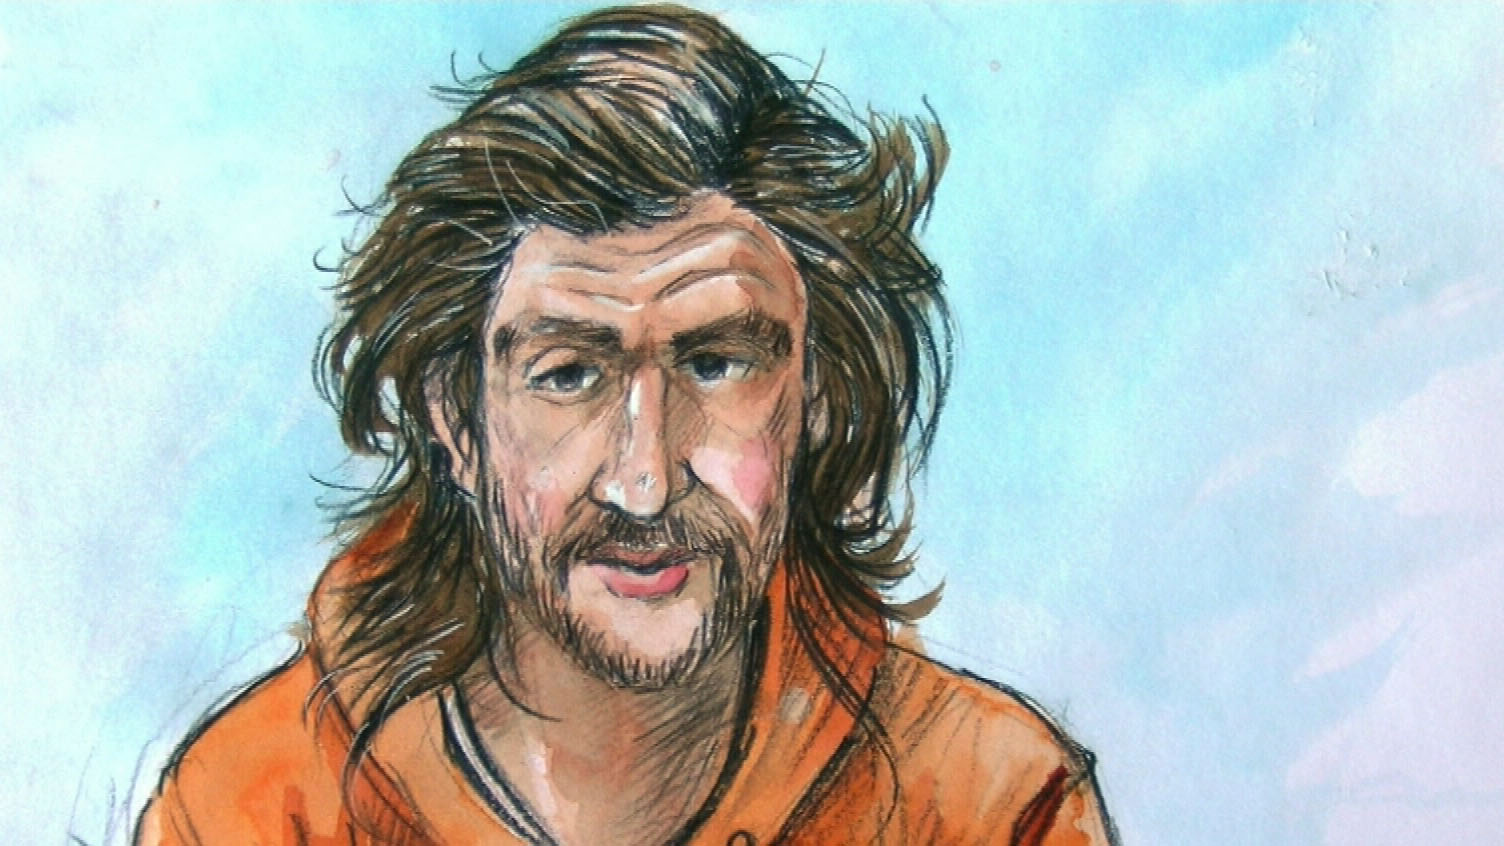 Tasered man pleads not guilty to assault charge